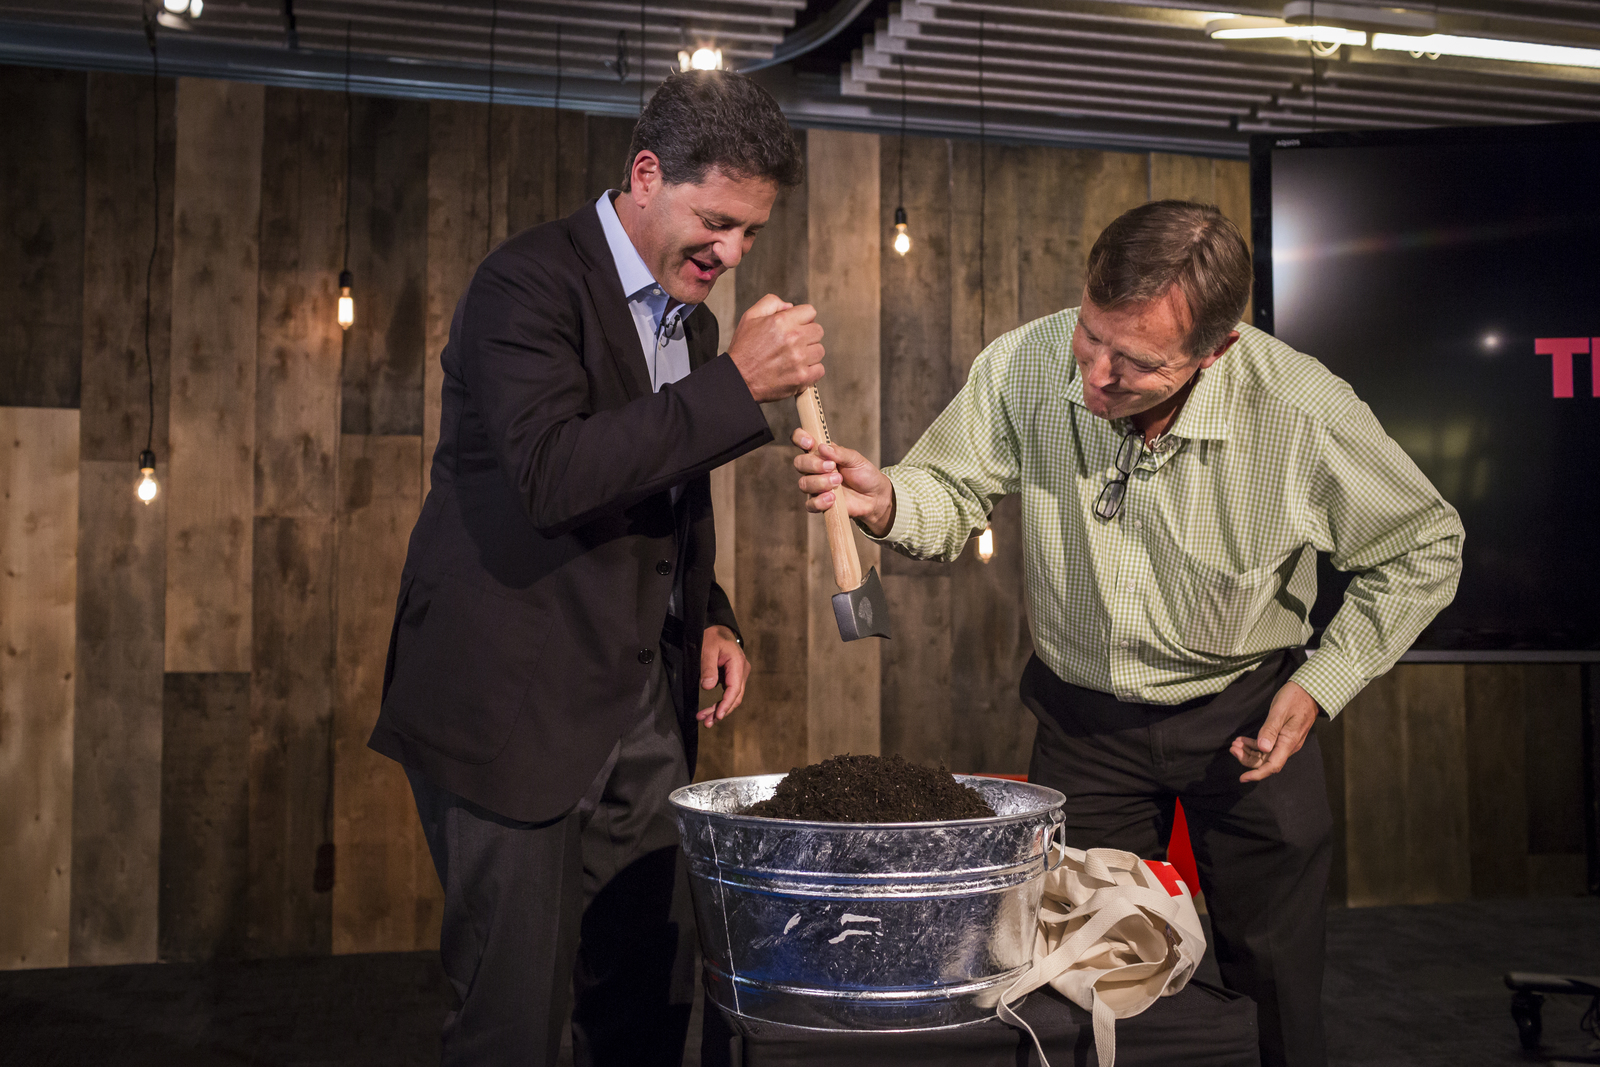 At TED@250, an in-office event held last week, Nick and Chris officially buried the hatchet. Photo: Ryan Lash